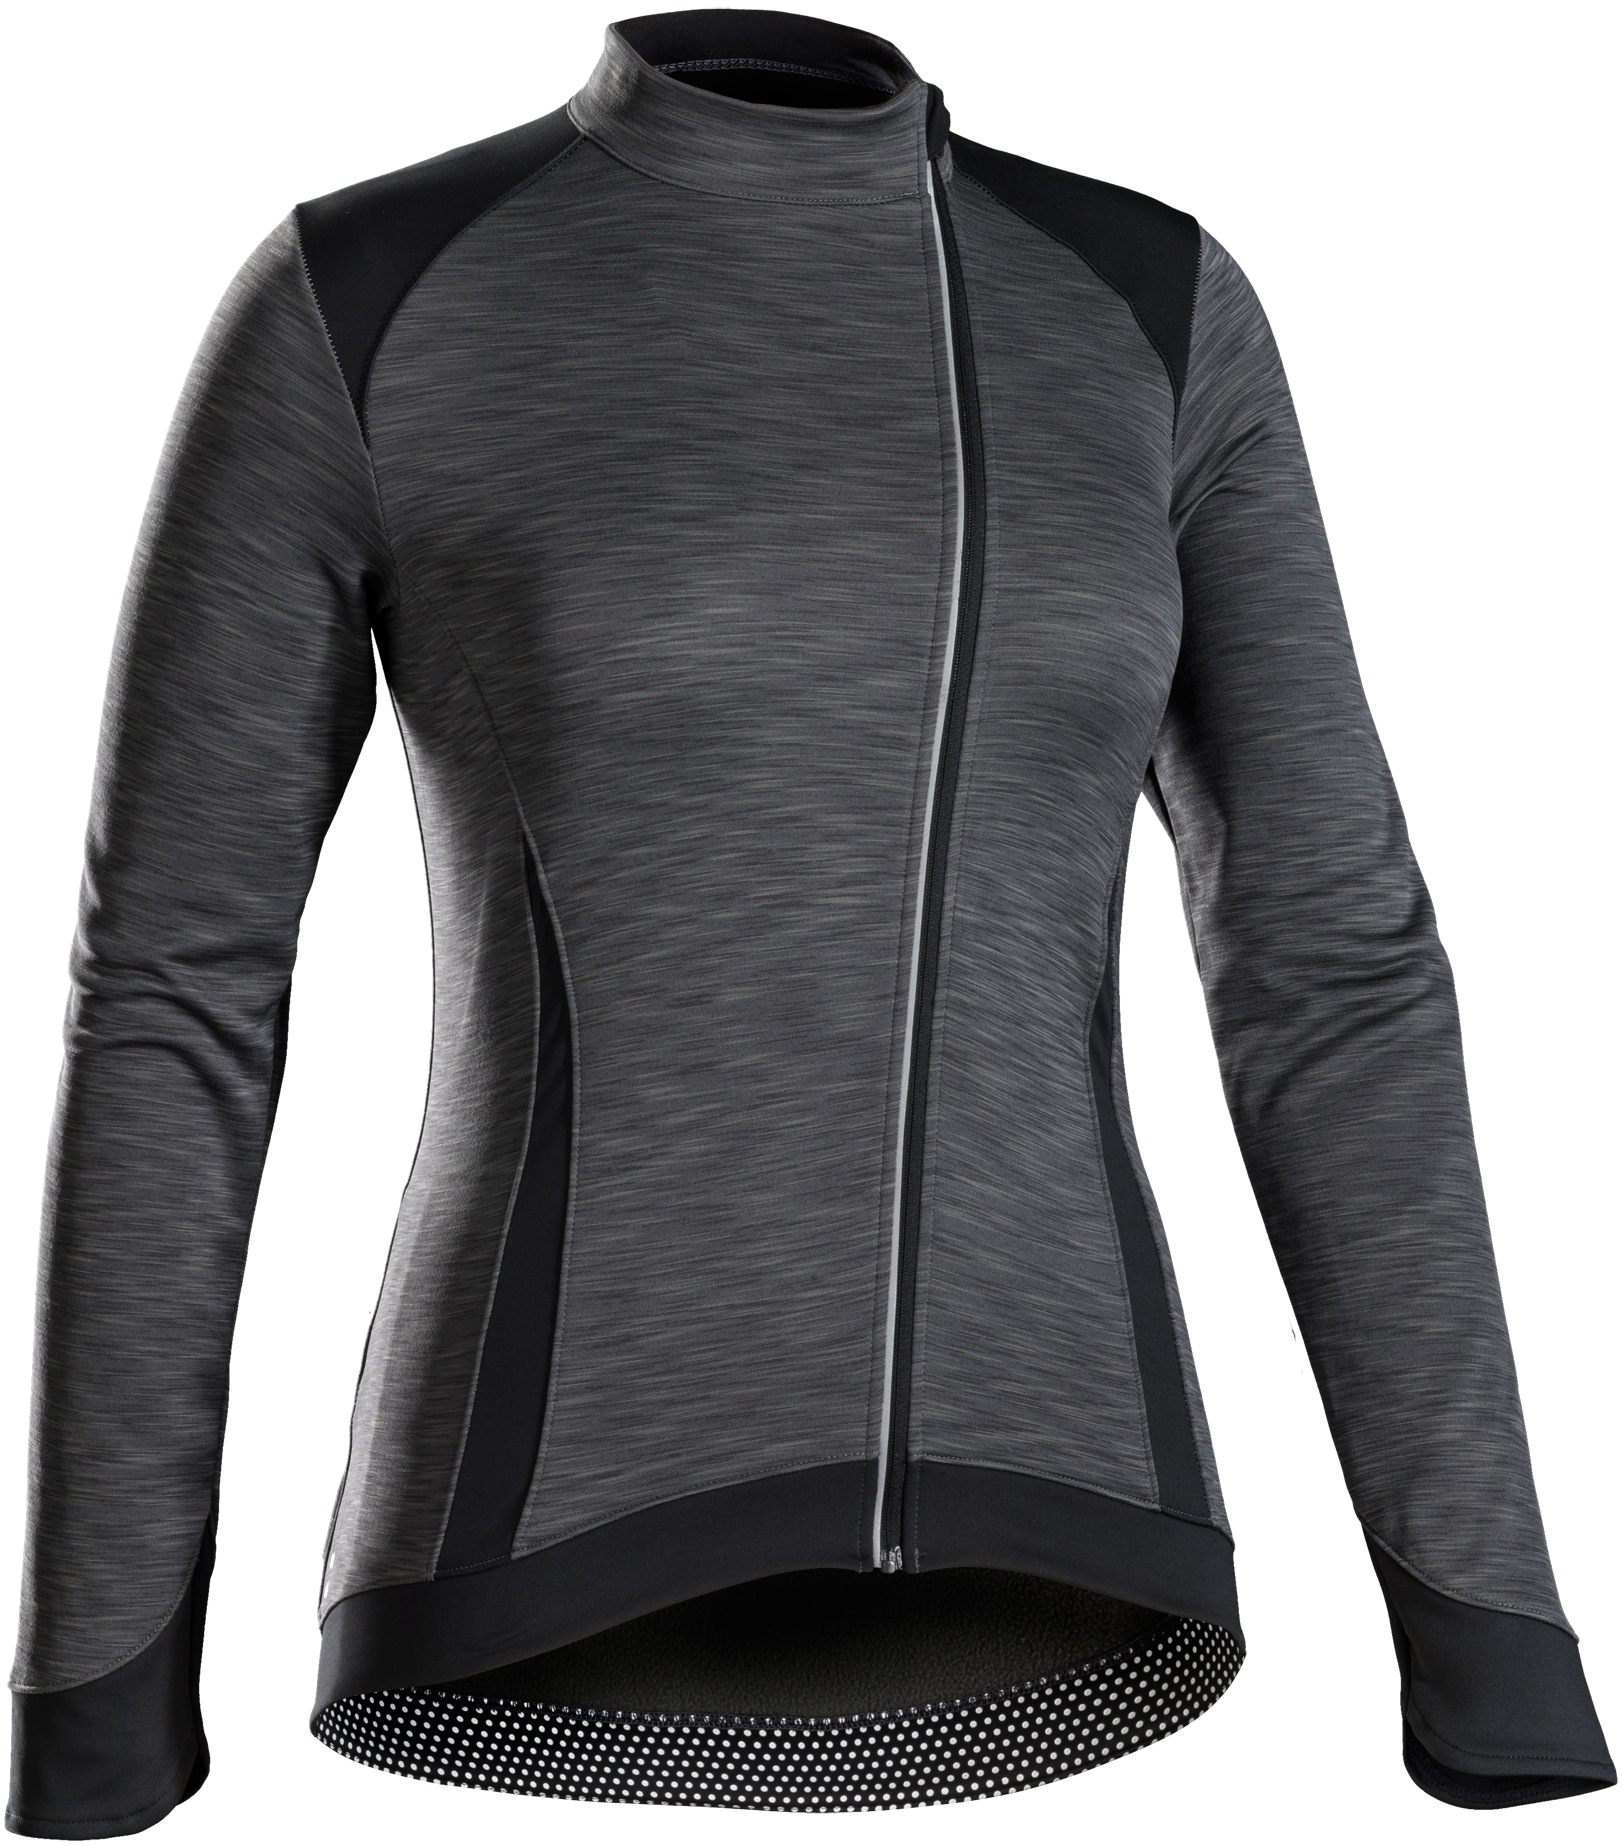 Bontrager Vella Thermal Long Sleeve Women s Cycling Jersey - Women s ... e26e600e3